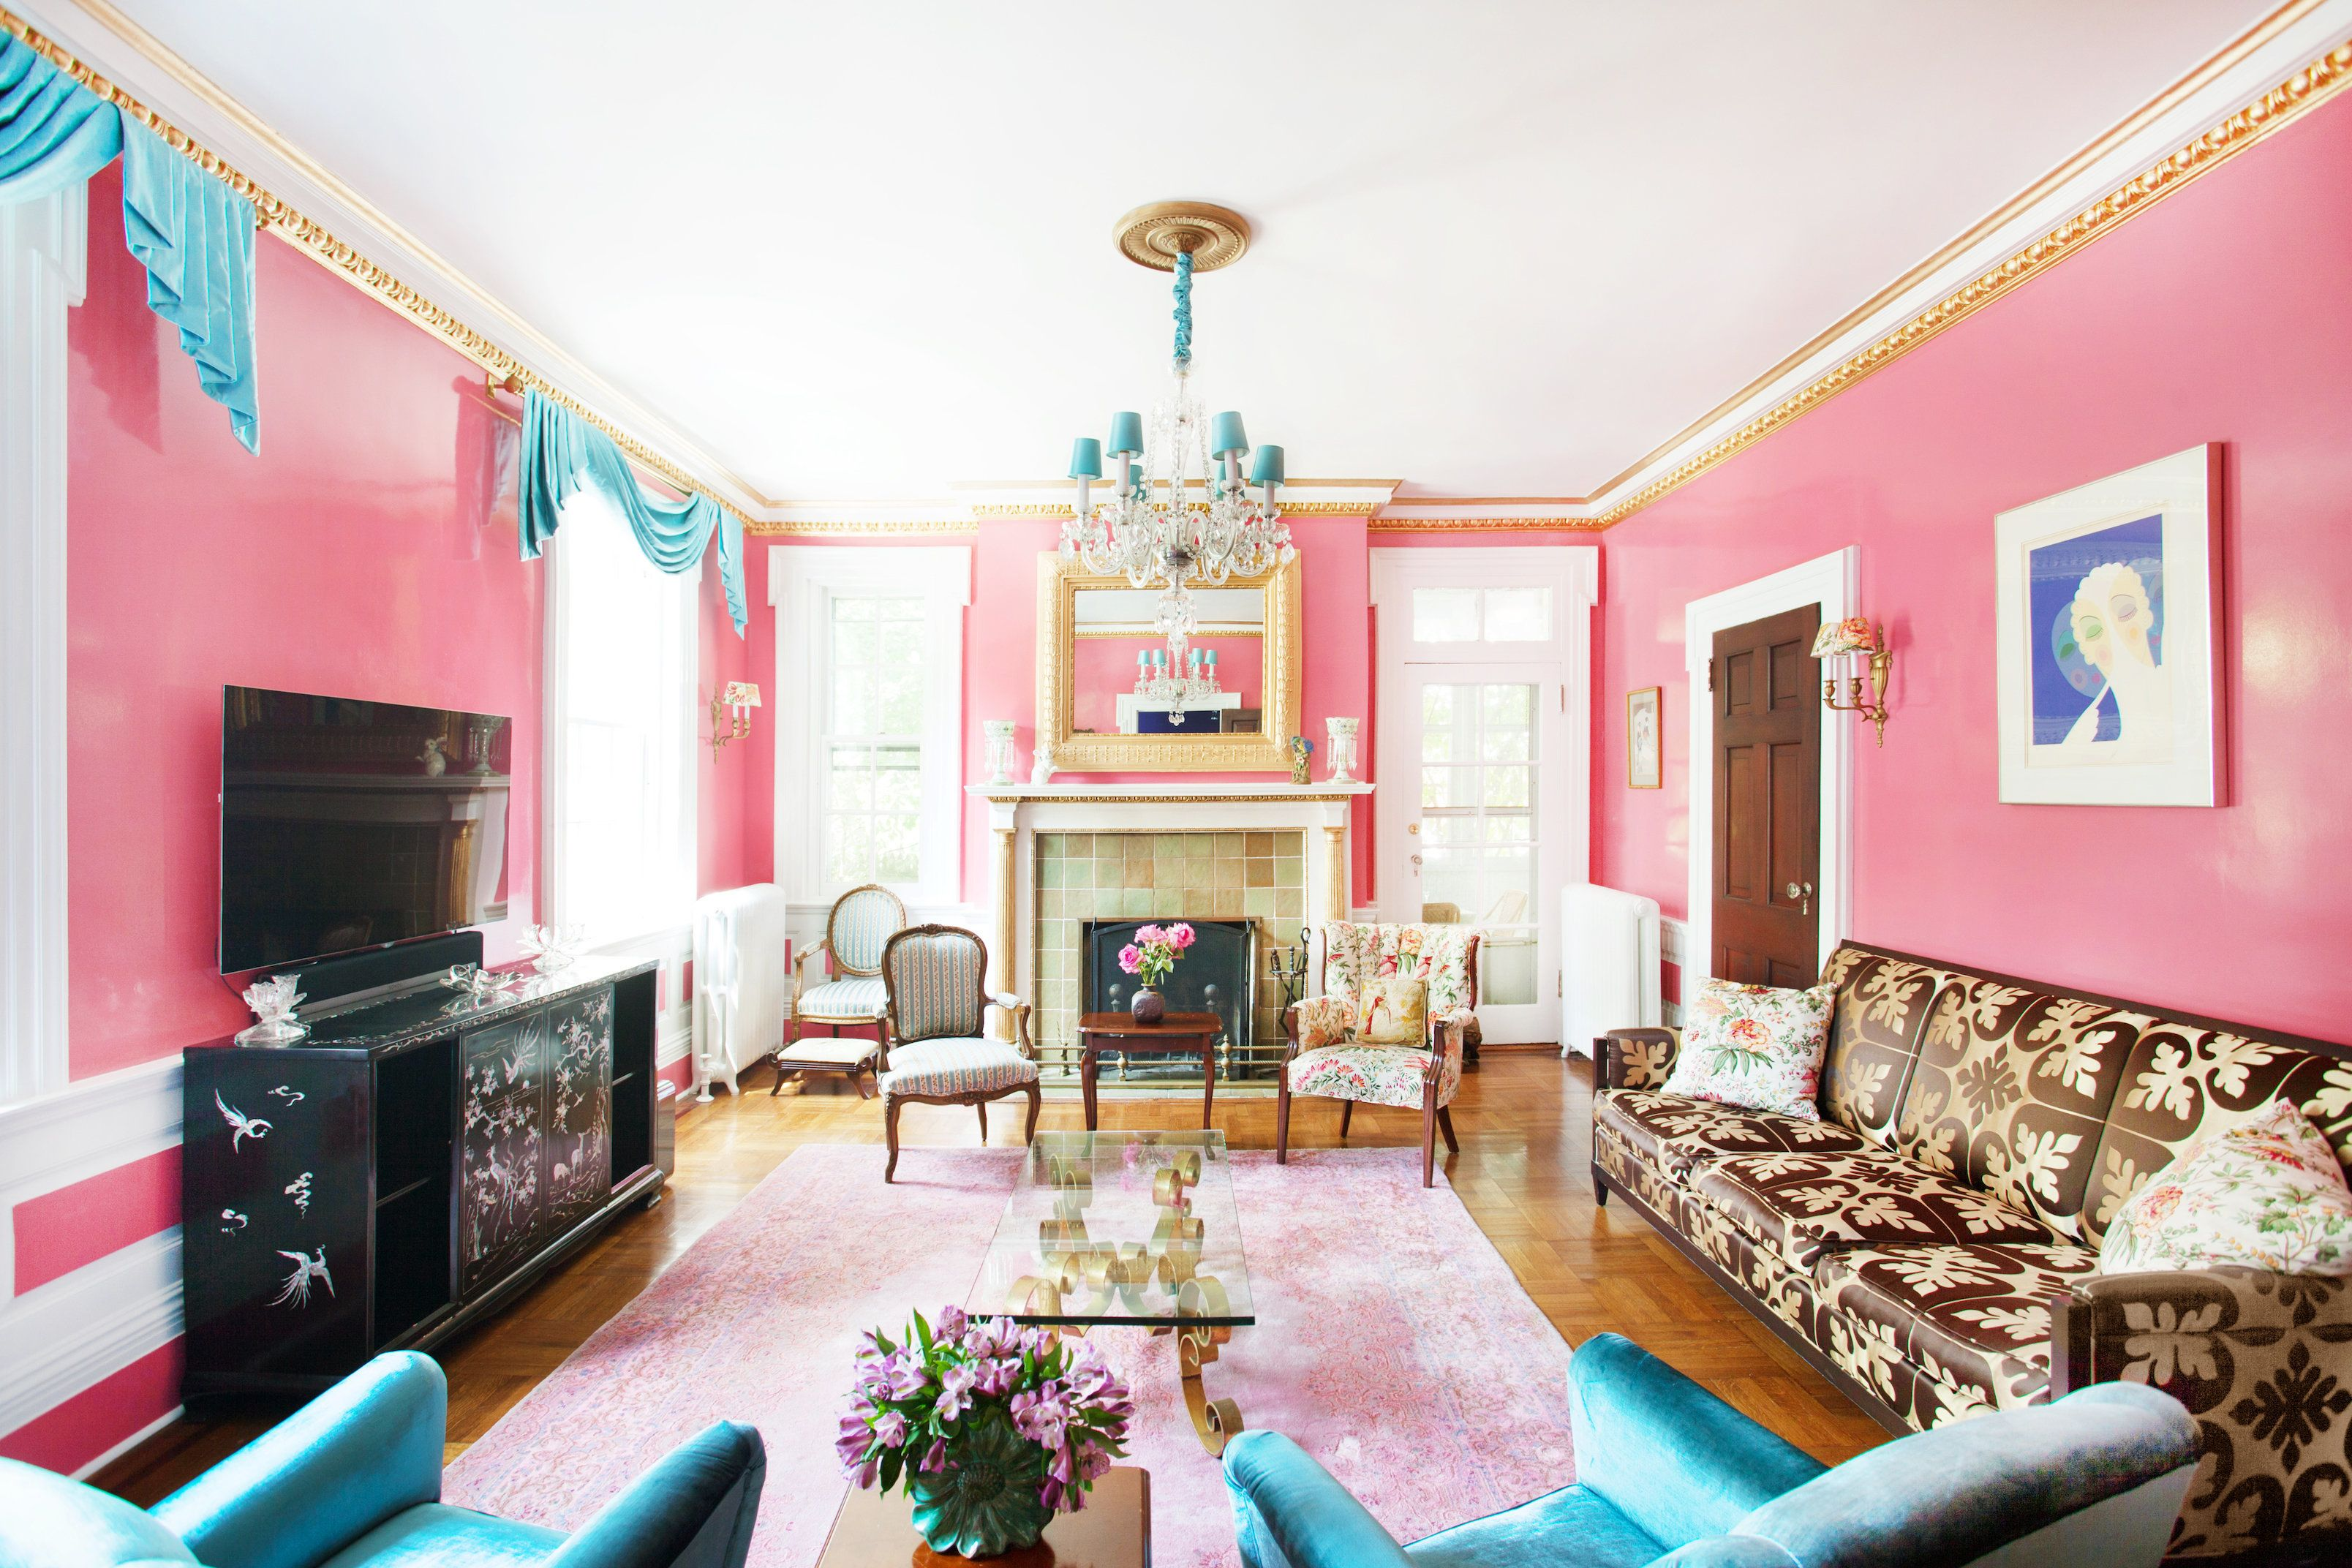 5 Expert Design Tips To Add Color And Pattern To Your Home & What Is Maximalism? 5 Expert Design Tips To Add Color And Pattern To ...